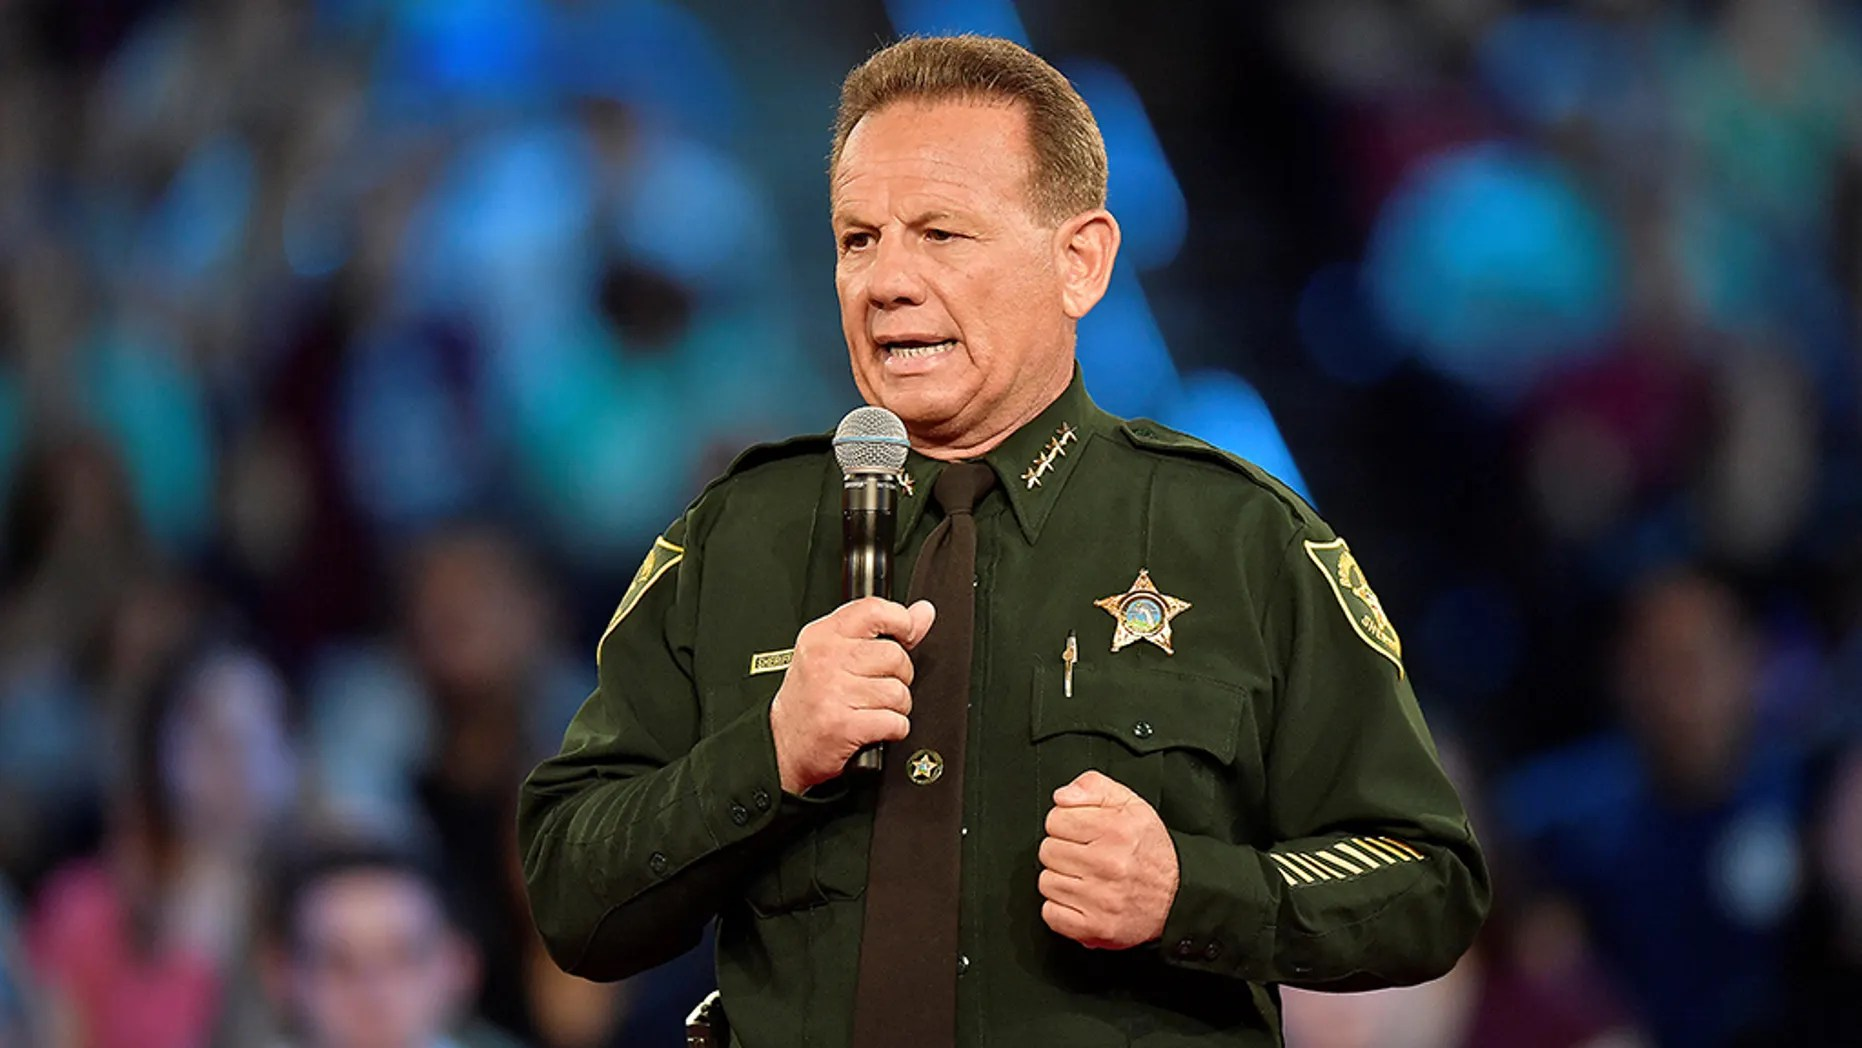 Broward County Sheriff Scott Israel was suspended on Friday.